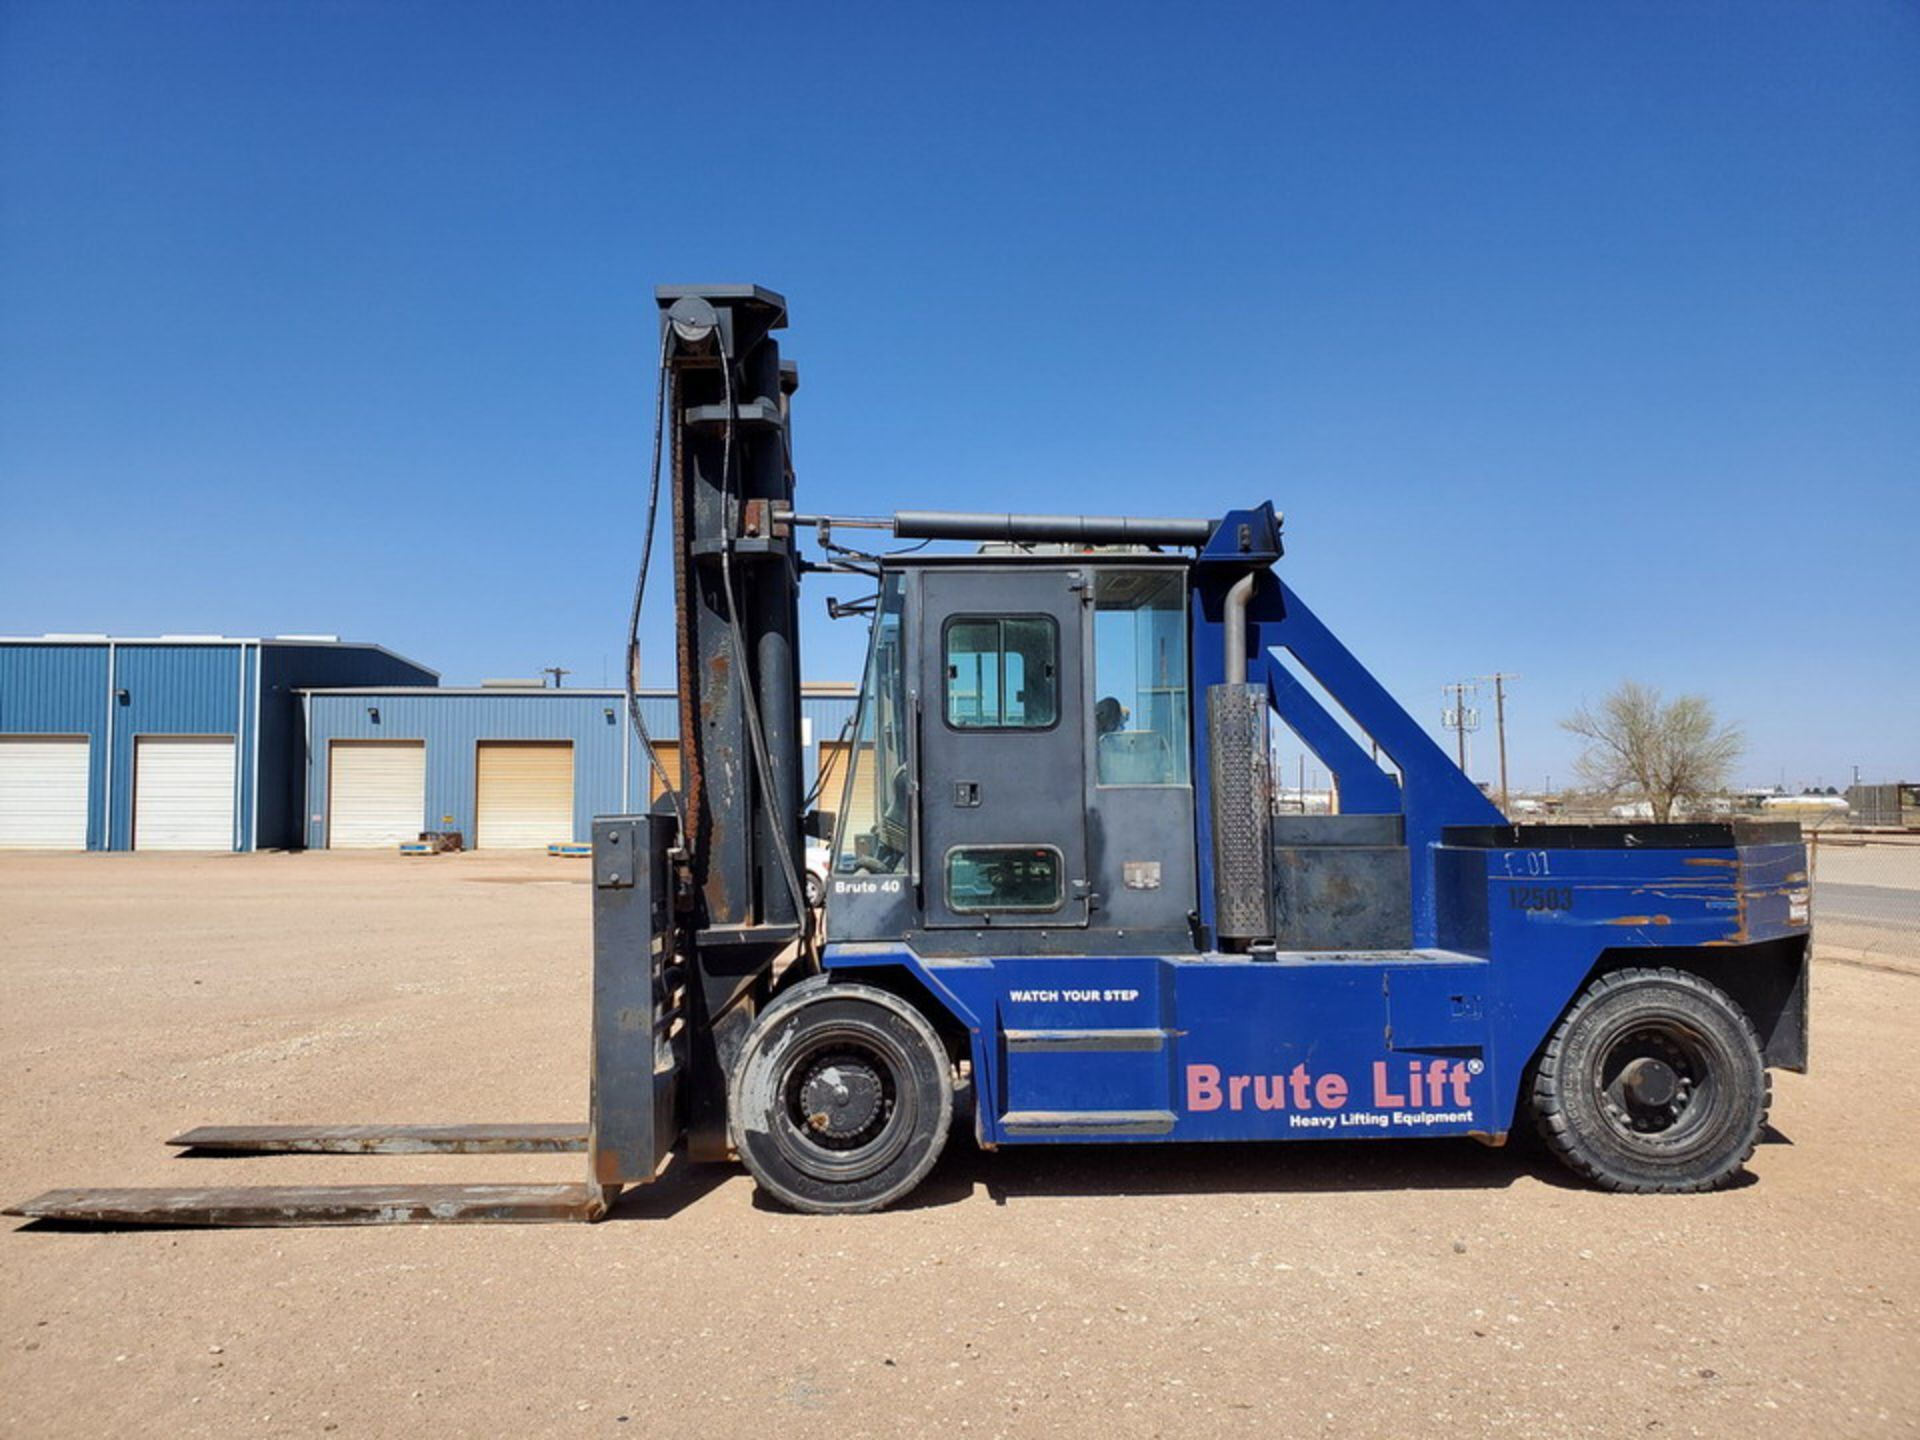 2012 Brute Lift BT40-48 Forklift 40H Cap., Engine Hrs: 3,389.3 - Image 8 of 17